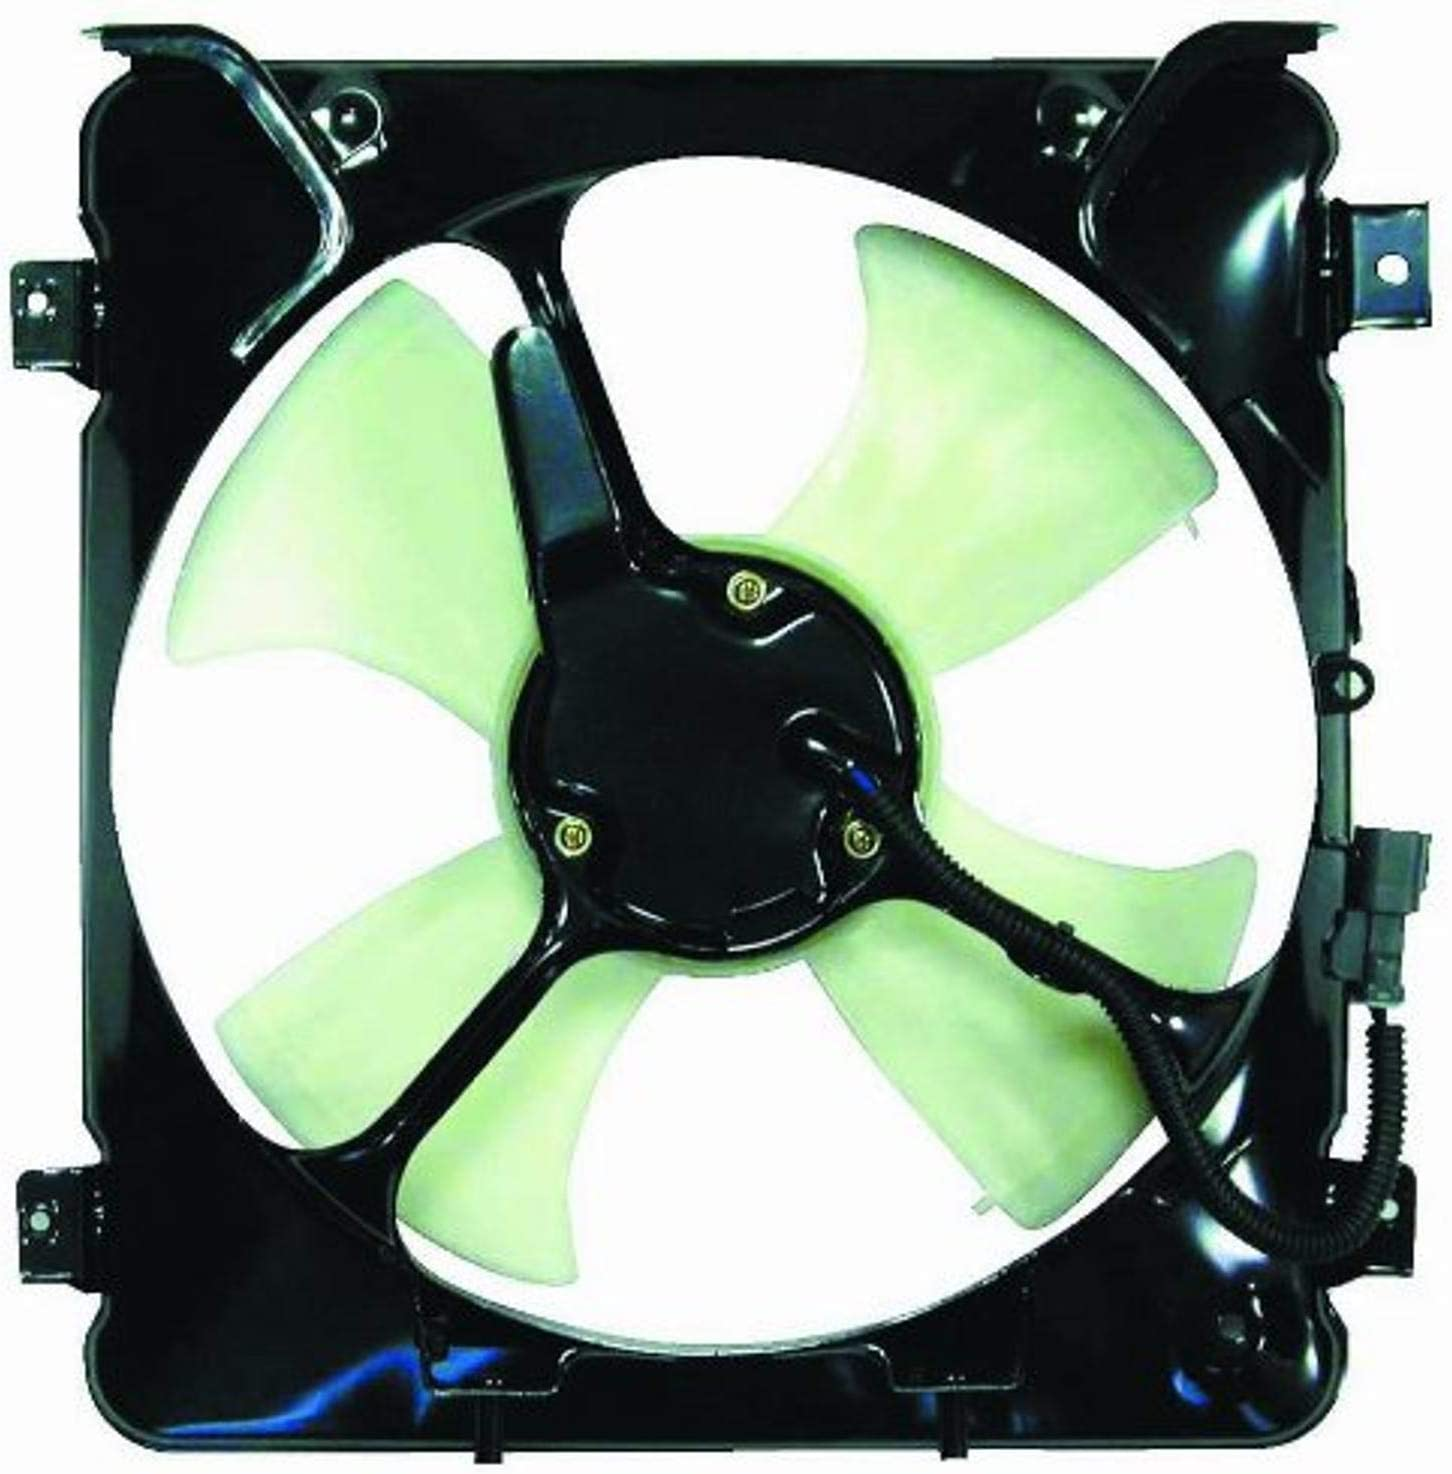 DEPO 317-55006-200 Replacement A/C Condenser Fan Assembly (This product is an aftermarket product. It is not created or sold by the OE car company)